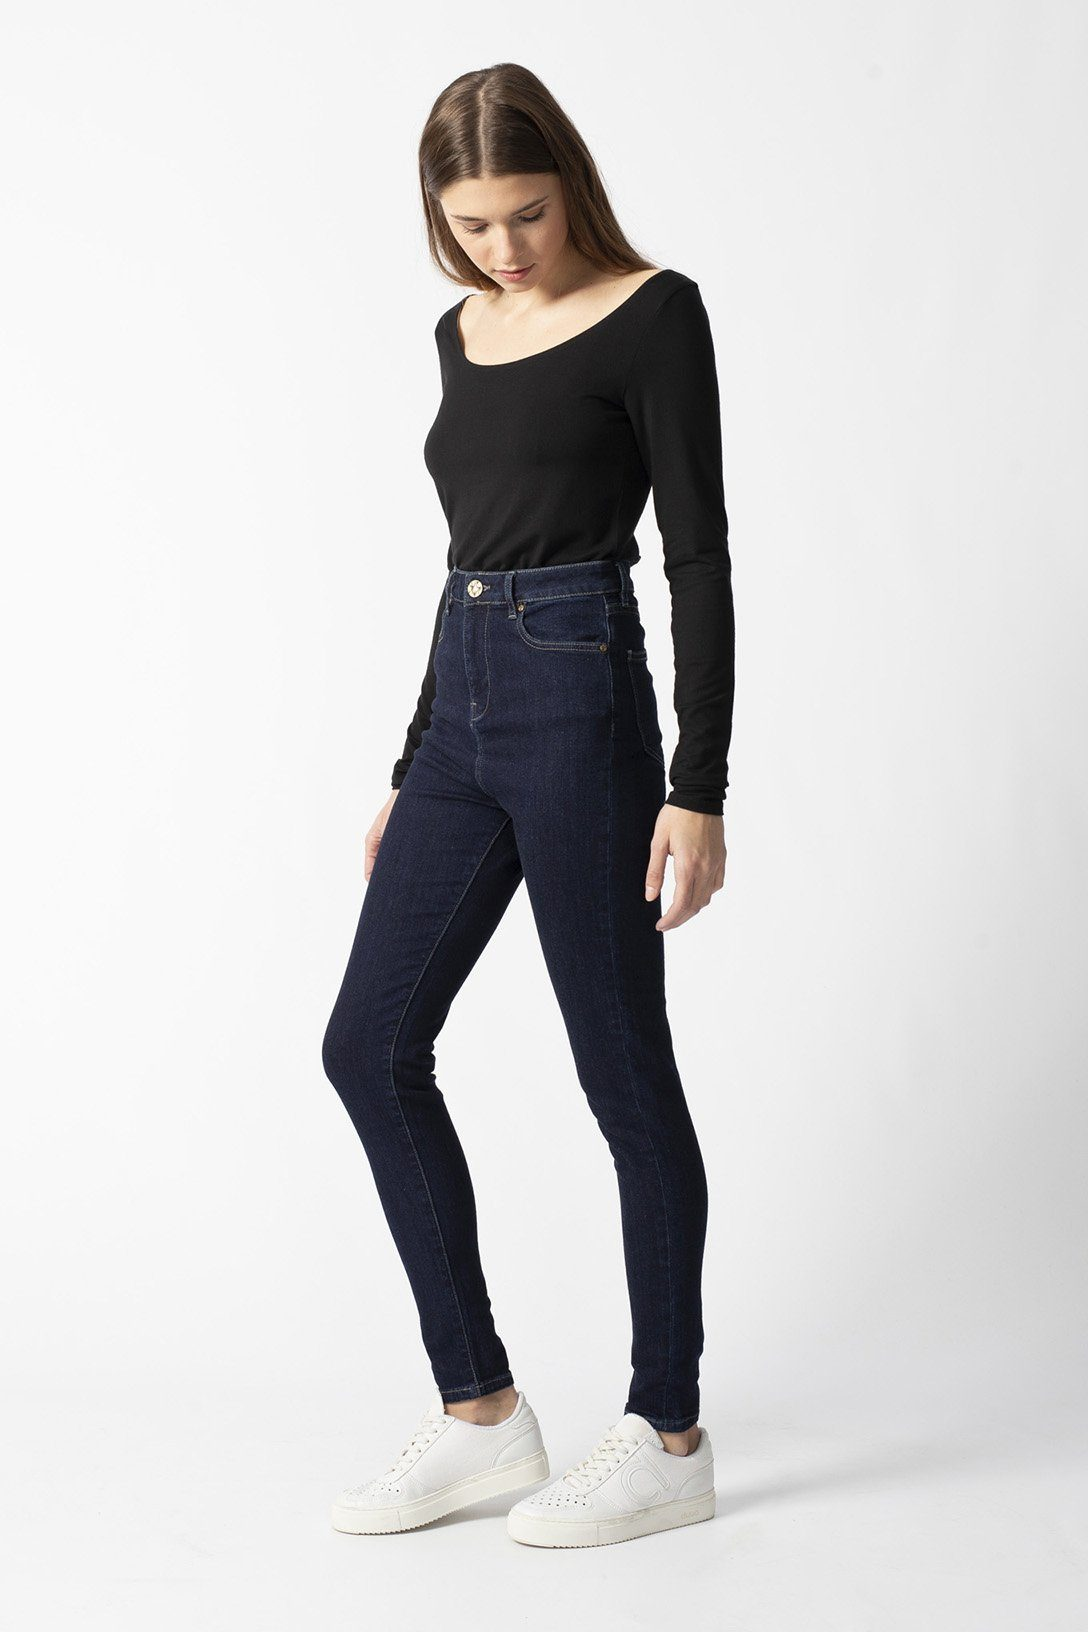 CARRIE rinse organic cotton Jeans by UCM - Komodo Fashion